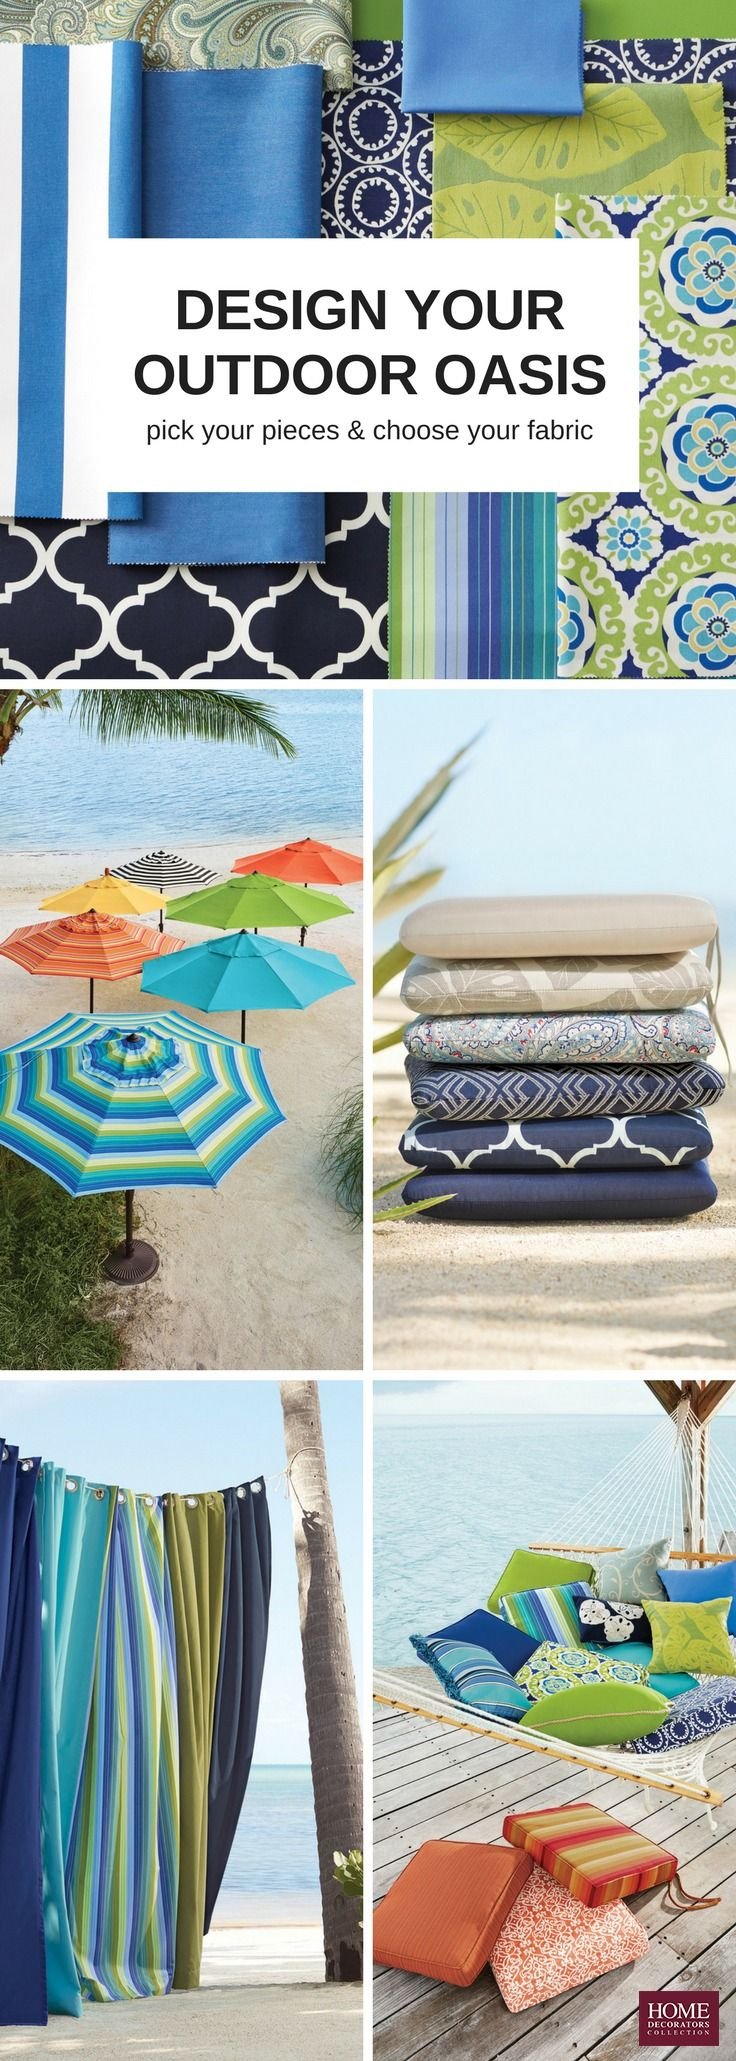 browse home decorators outdoor decor selections including outdoor benches outdoor cushions outdoor bar stools and a variety of outdoor furniture and - Home Decorators Outdoor Cushions